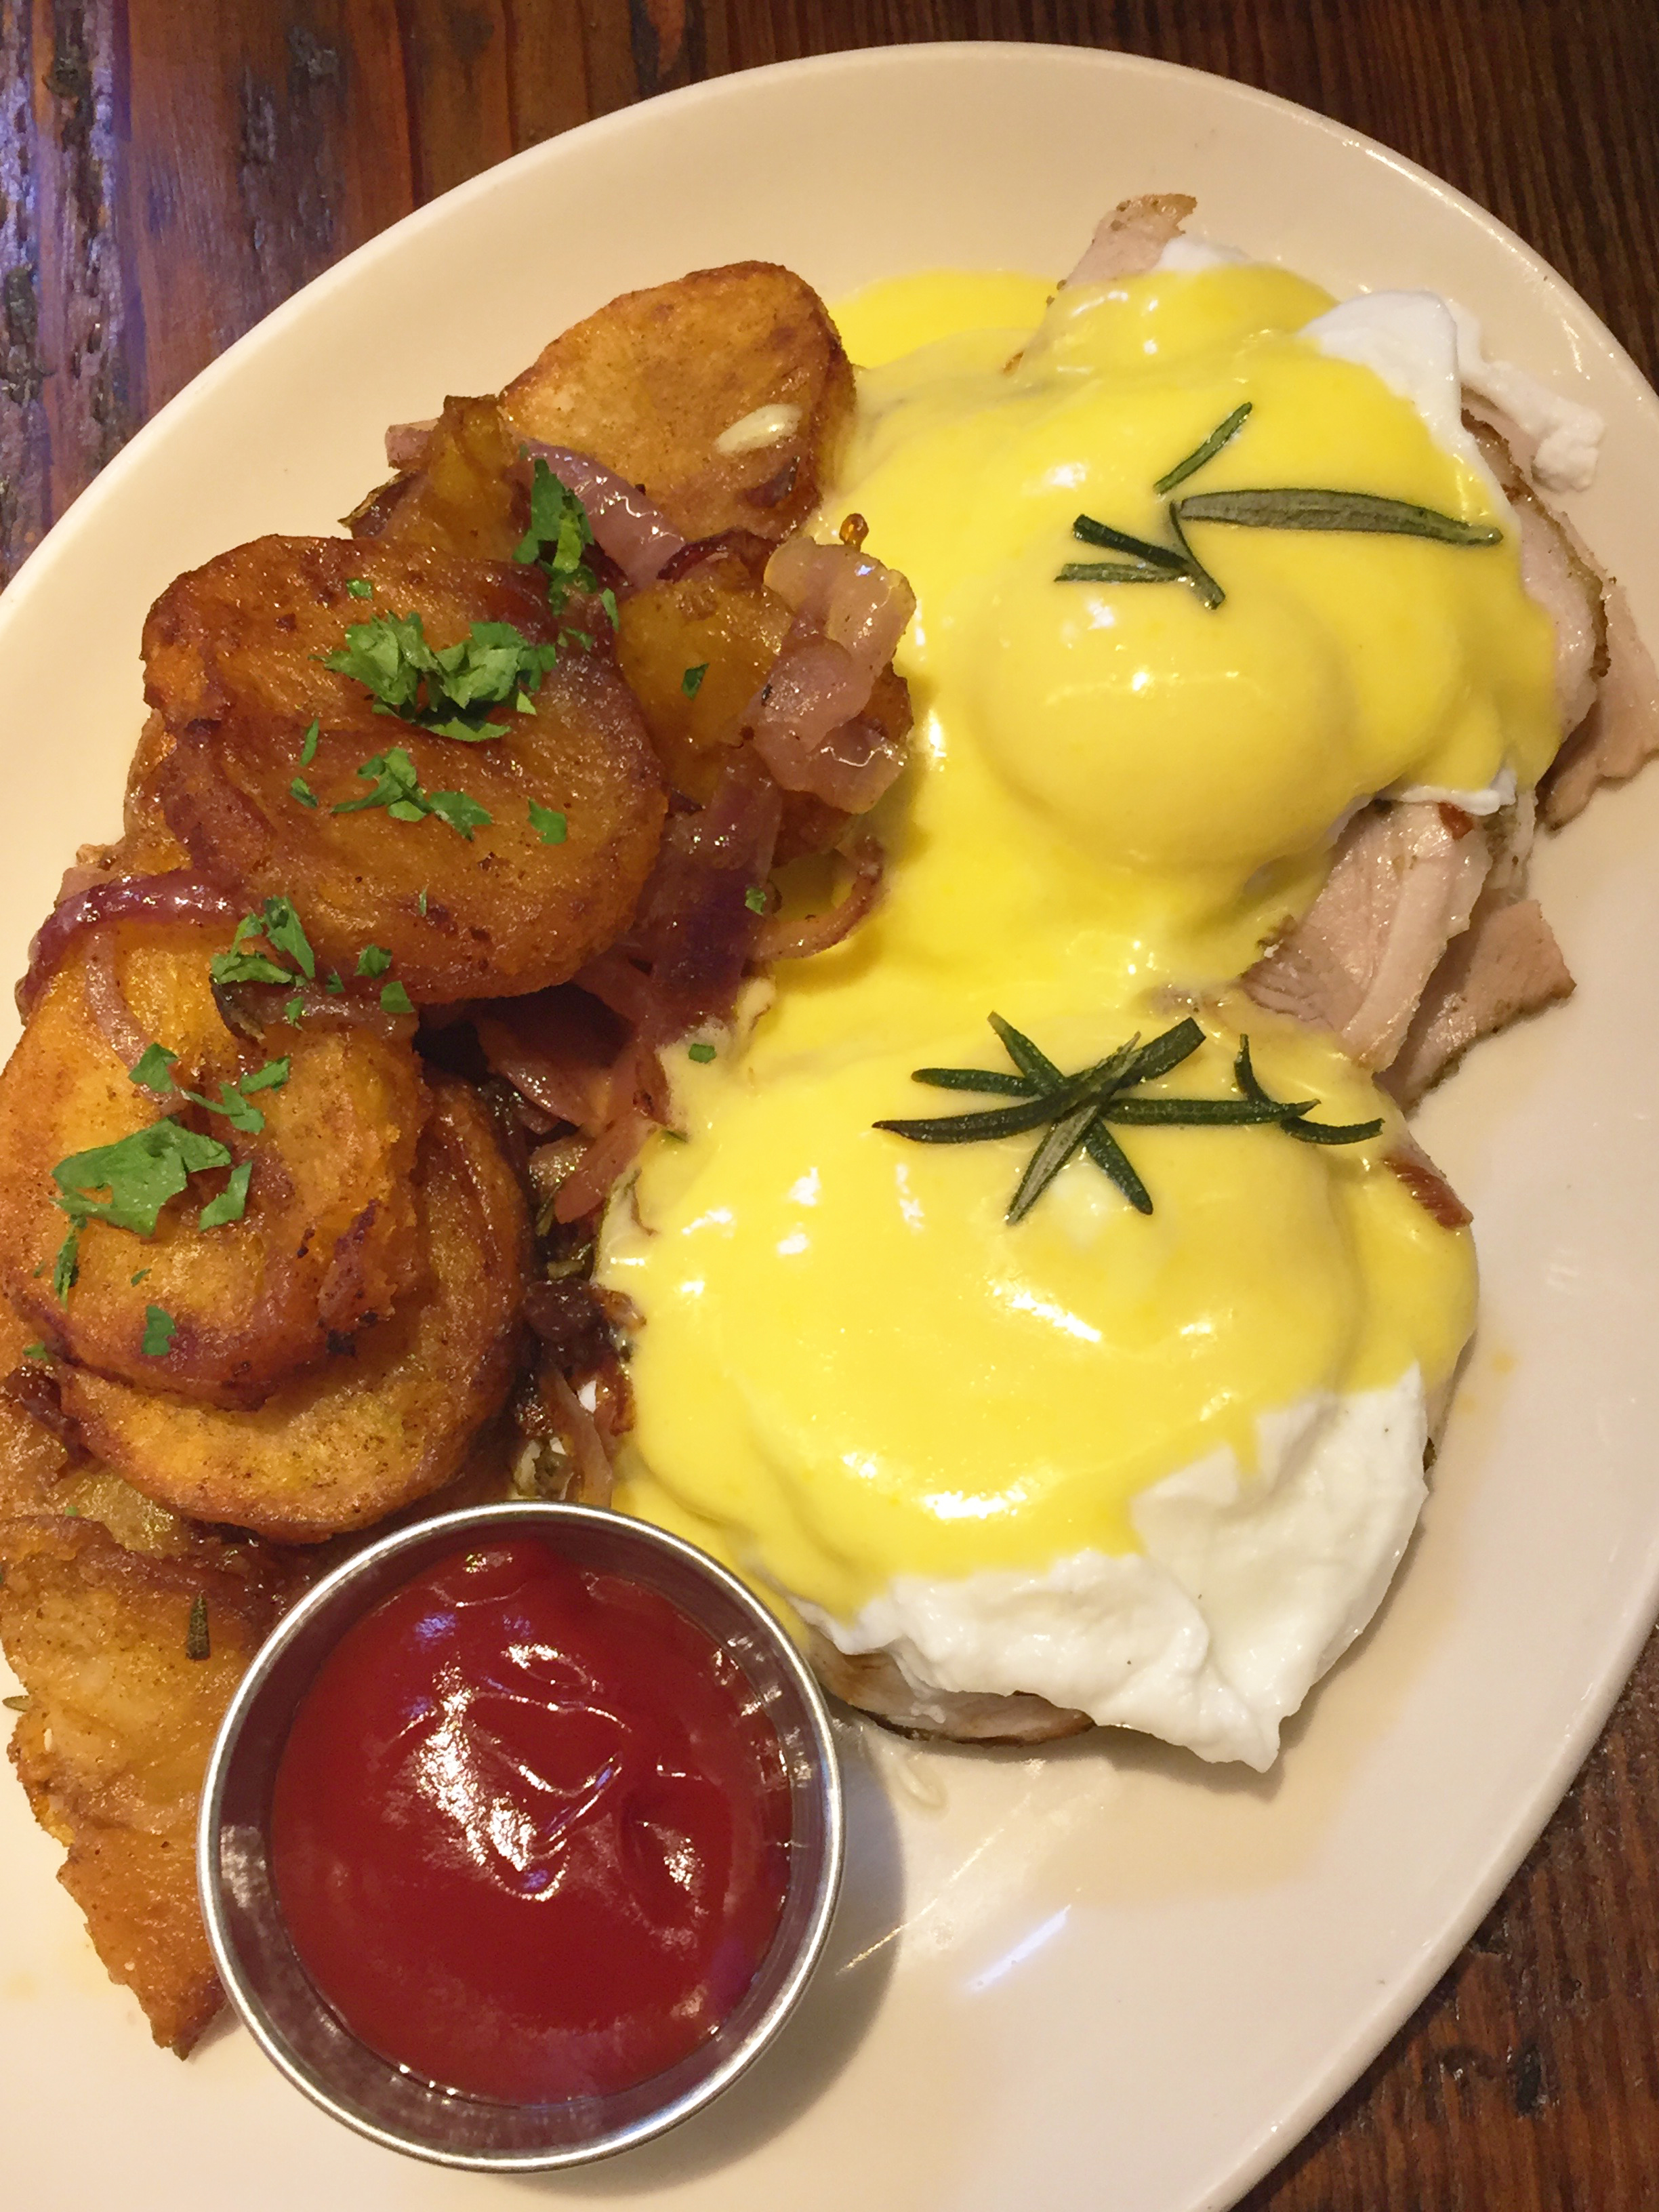 Porchetta eggs benedict, housemade english muffin, hollandaise, breakfast potatoes